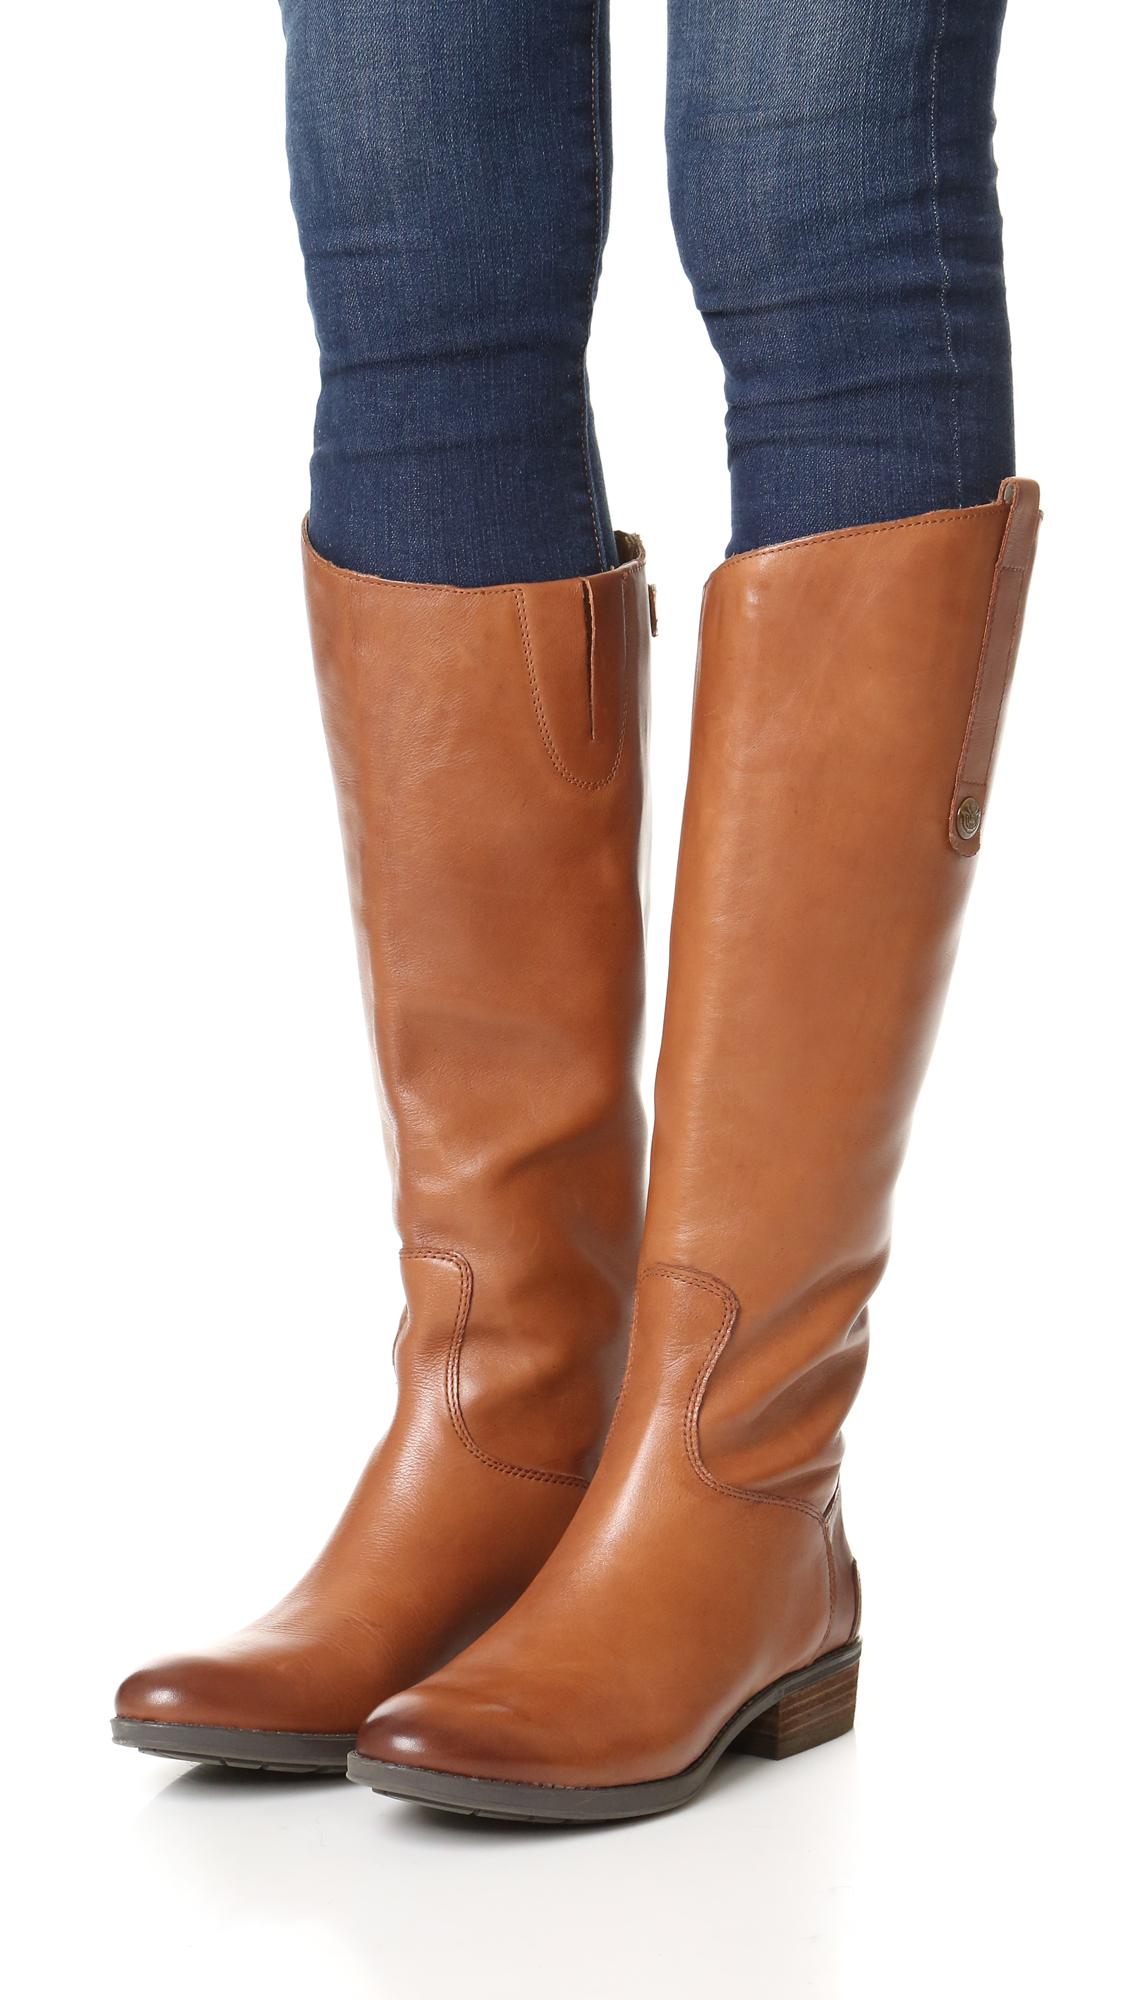 b4c751b62 Sam Edelman - Brown Penny Riding Boots - Lyst. View fullscreen